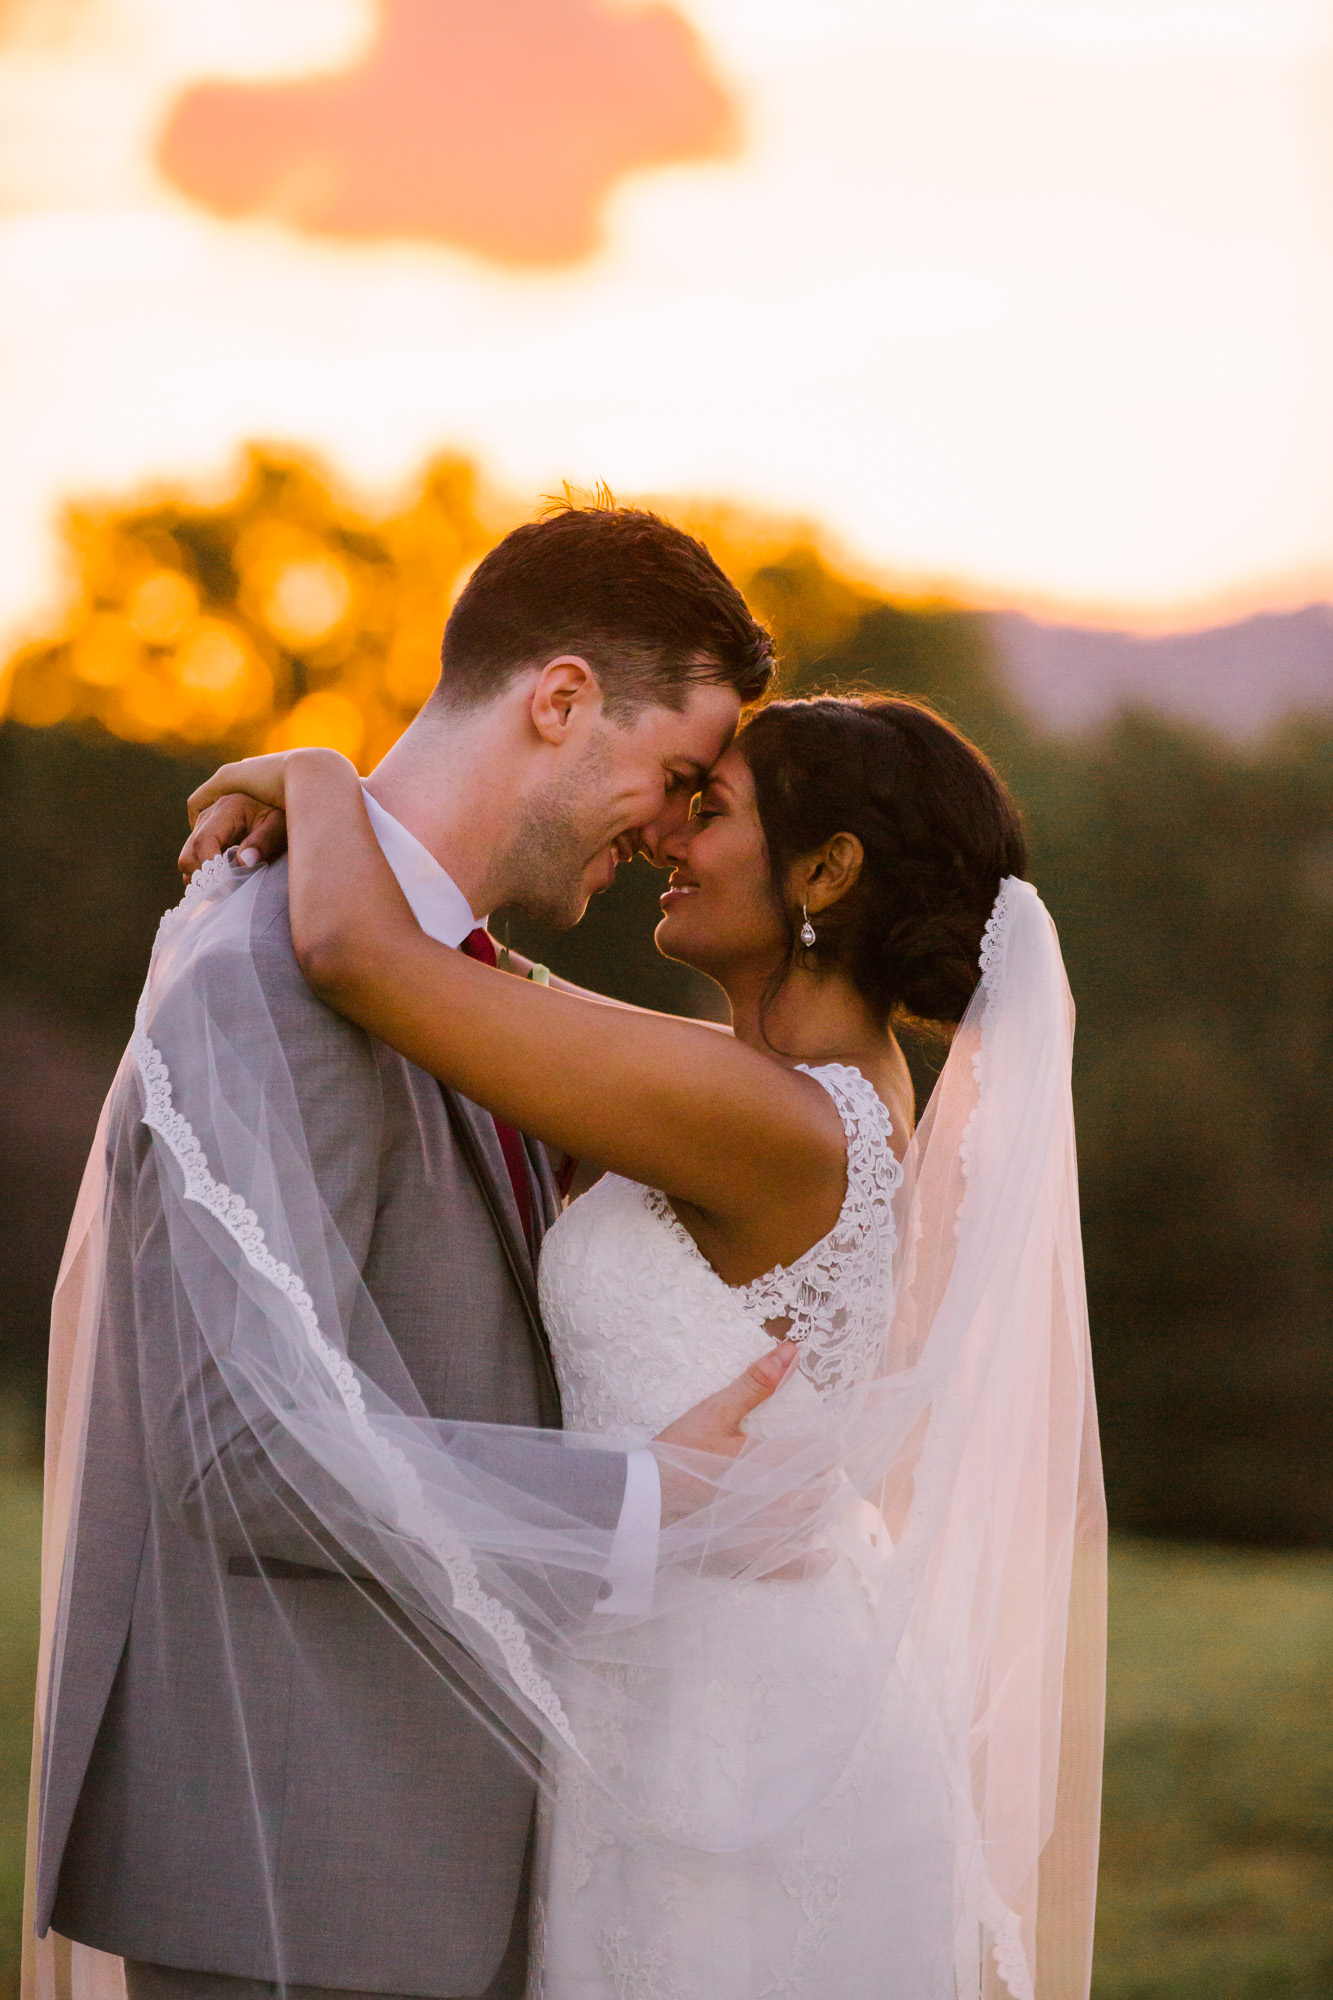 Waynesville NC Wedding Photography | Bride and Groom Hugging at Sunset